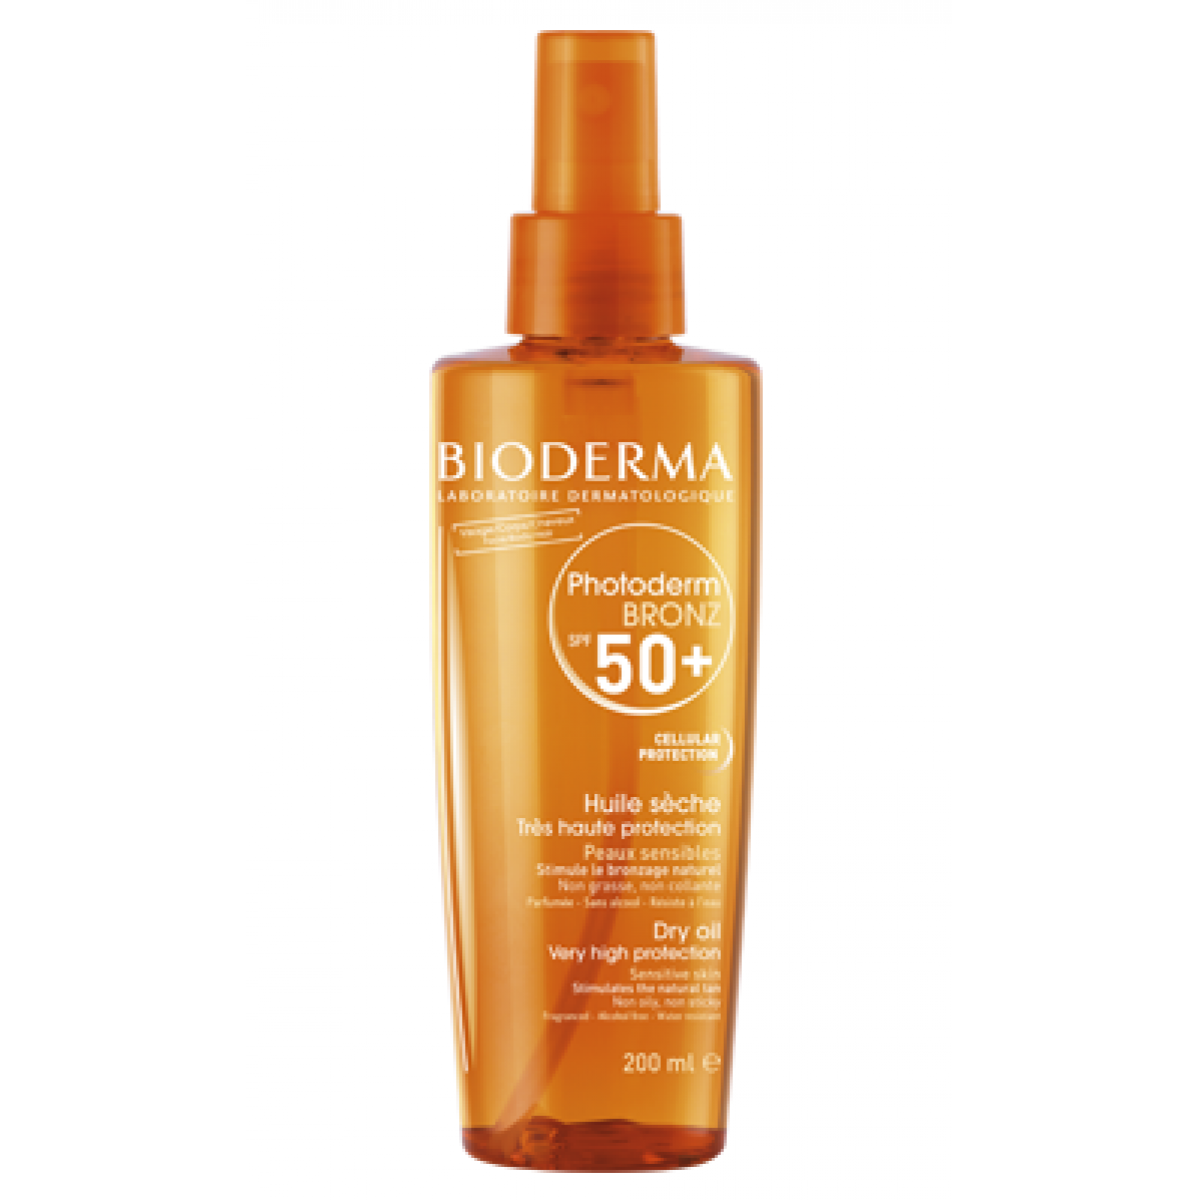 bioderma photoderm bronz huile s che spf 50 200ml parapharmacie pharmarket. Black Bedroom Furniture Sets. Home Design Ideas